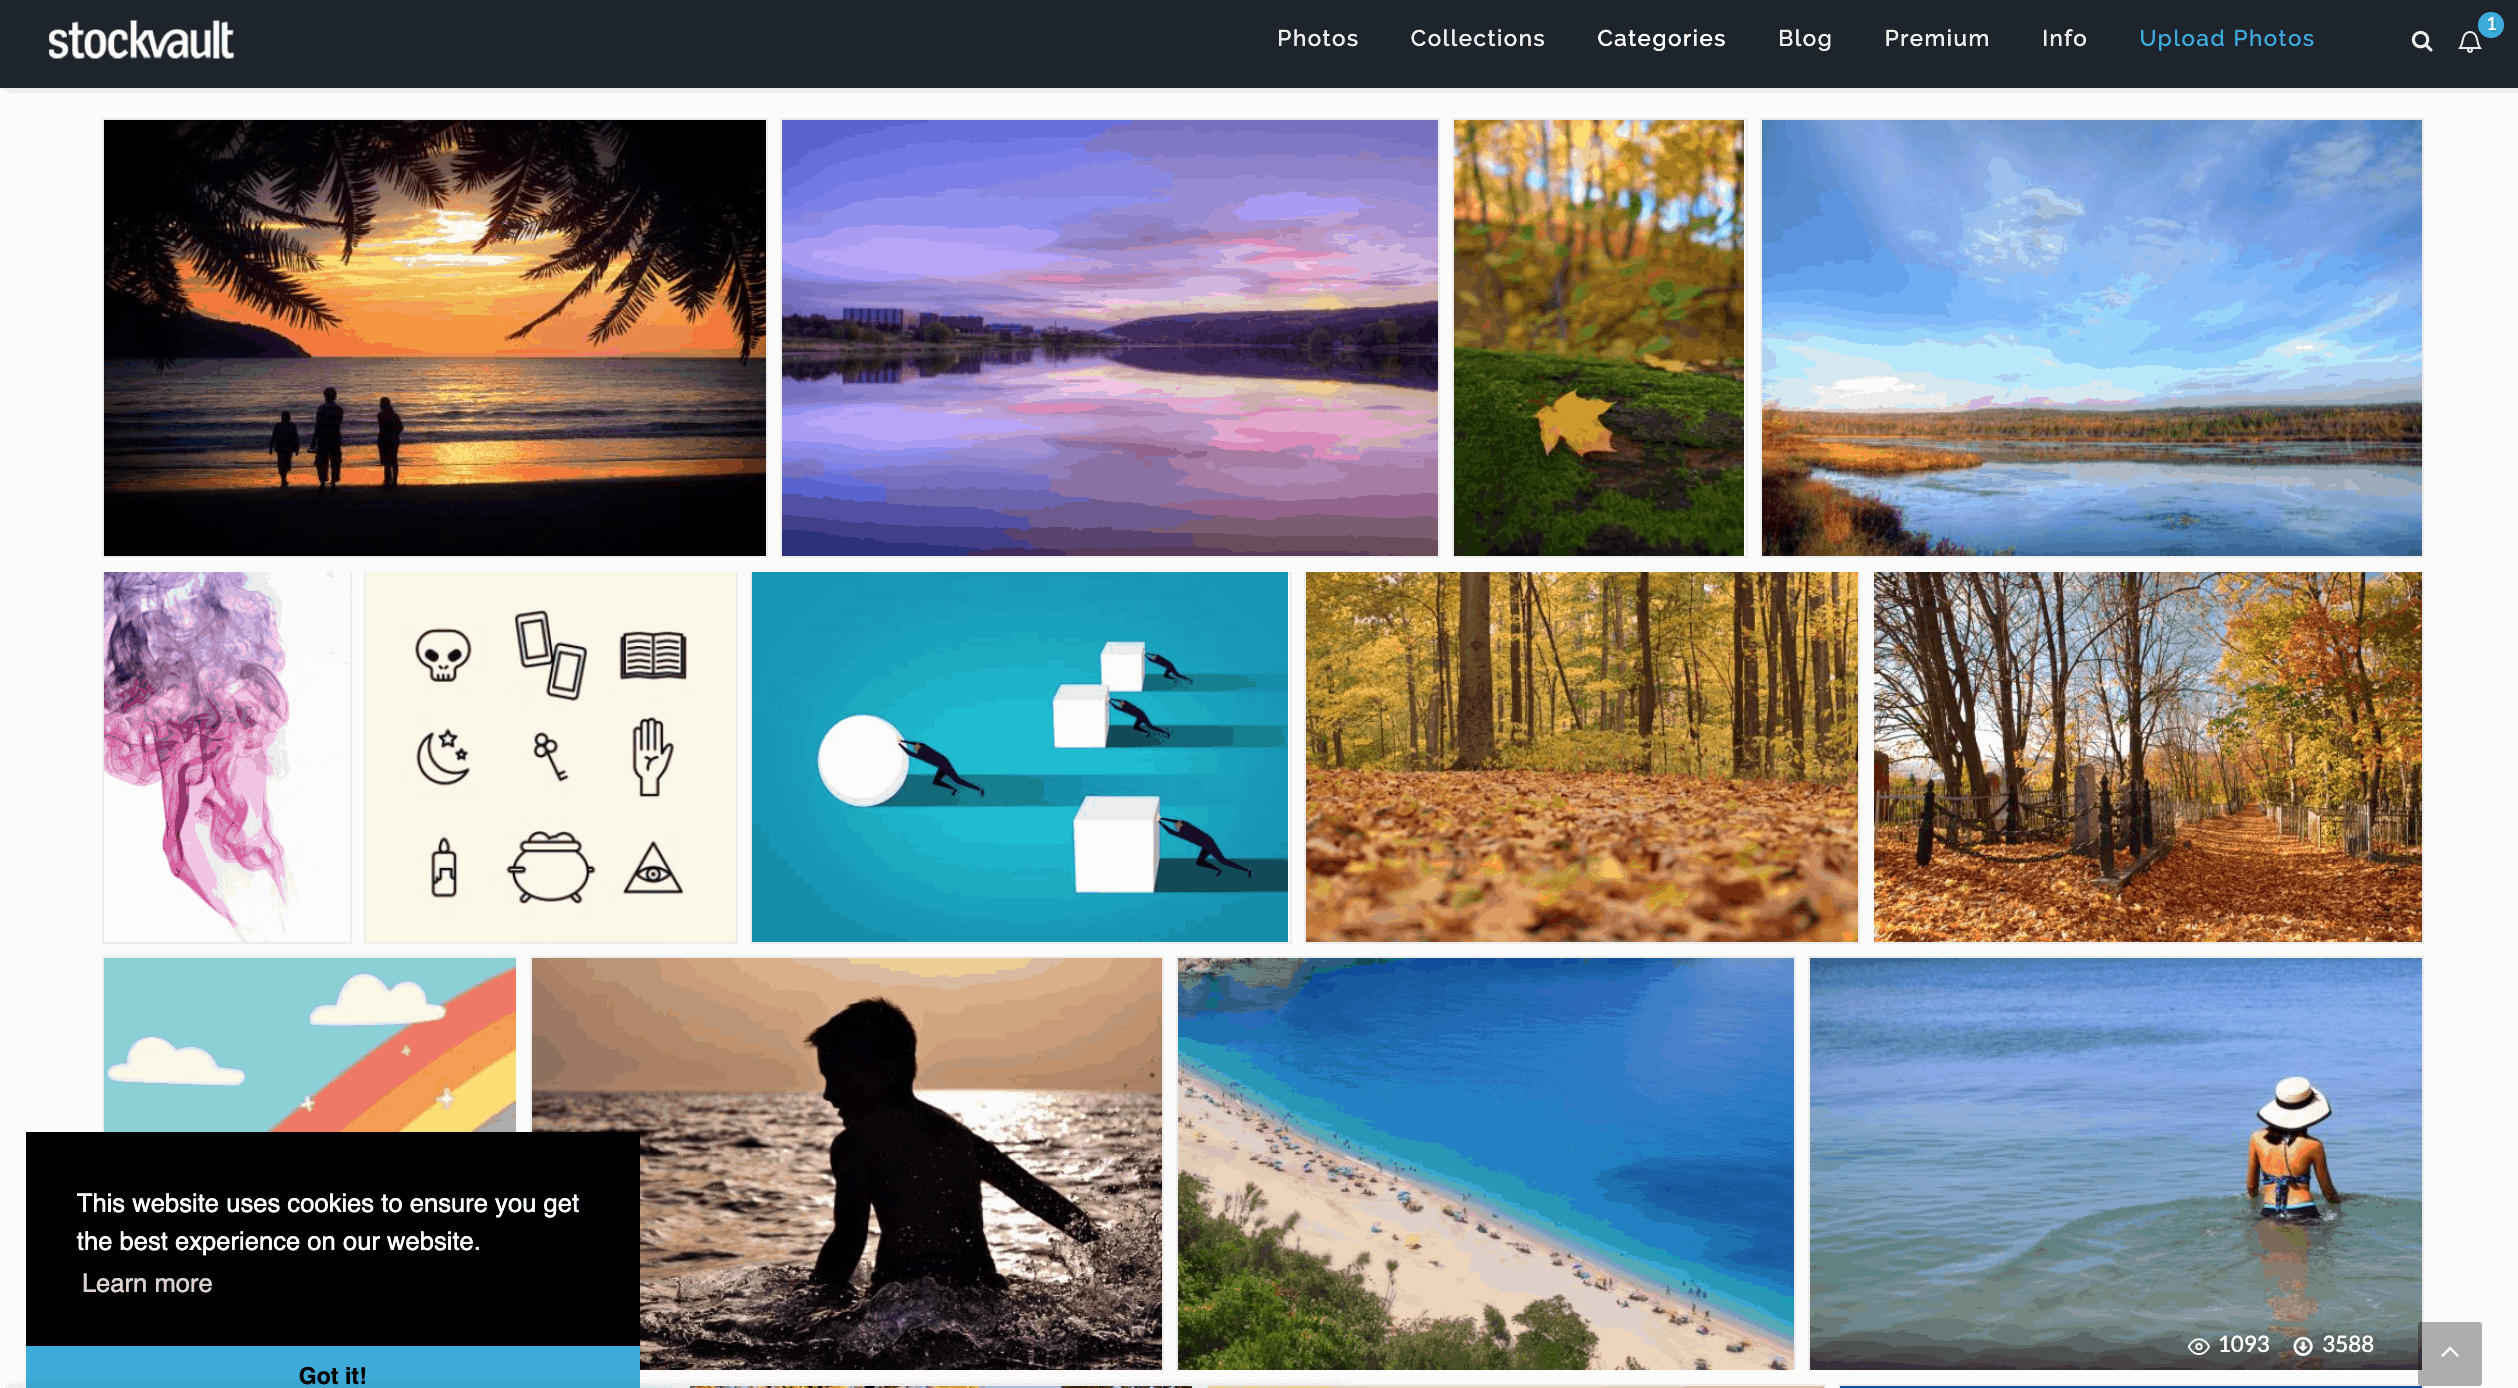 5 Free Stock Photo Websites You Should Bookmark from UIGarage